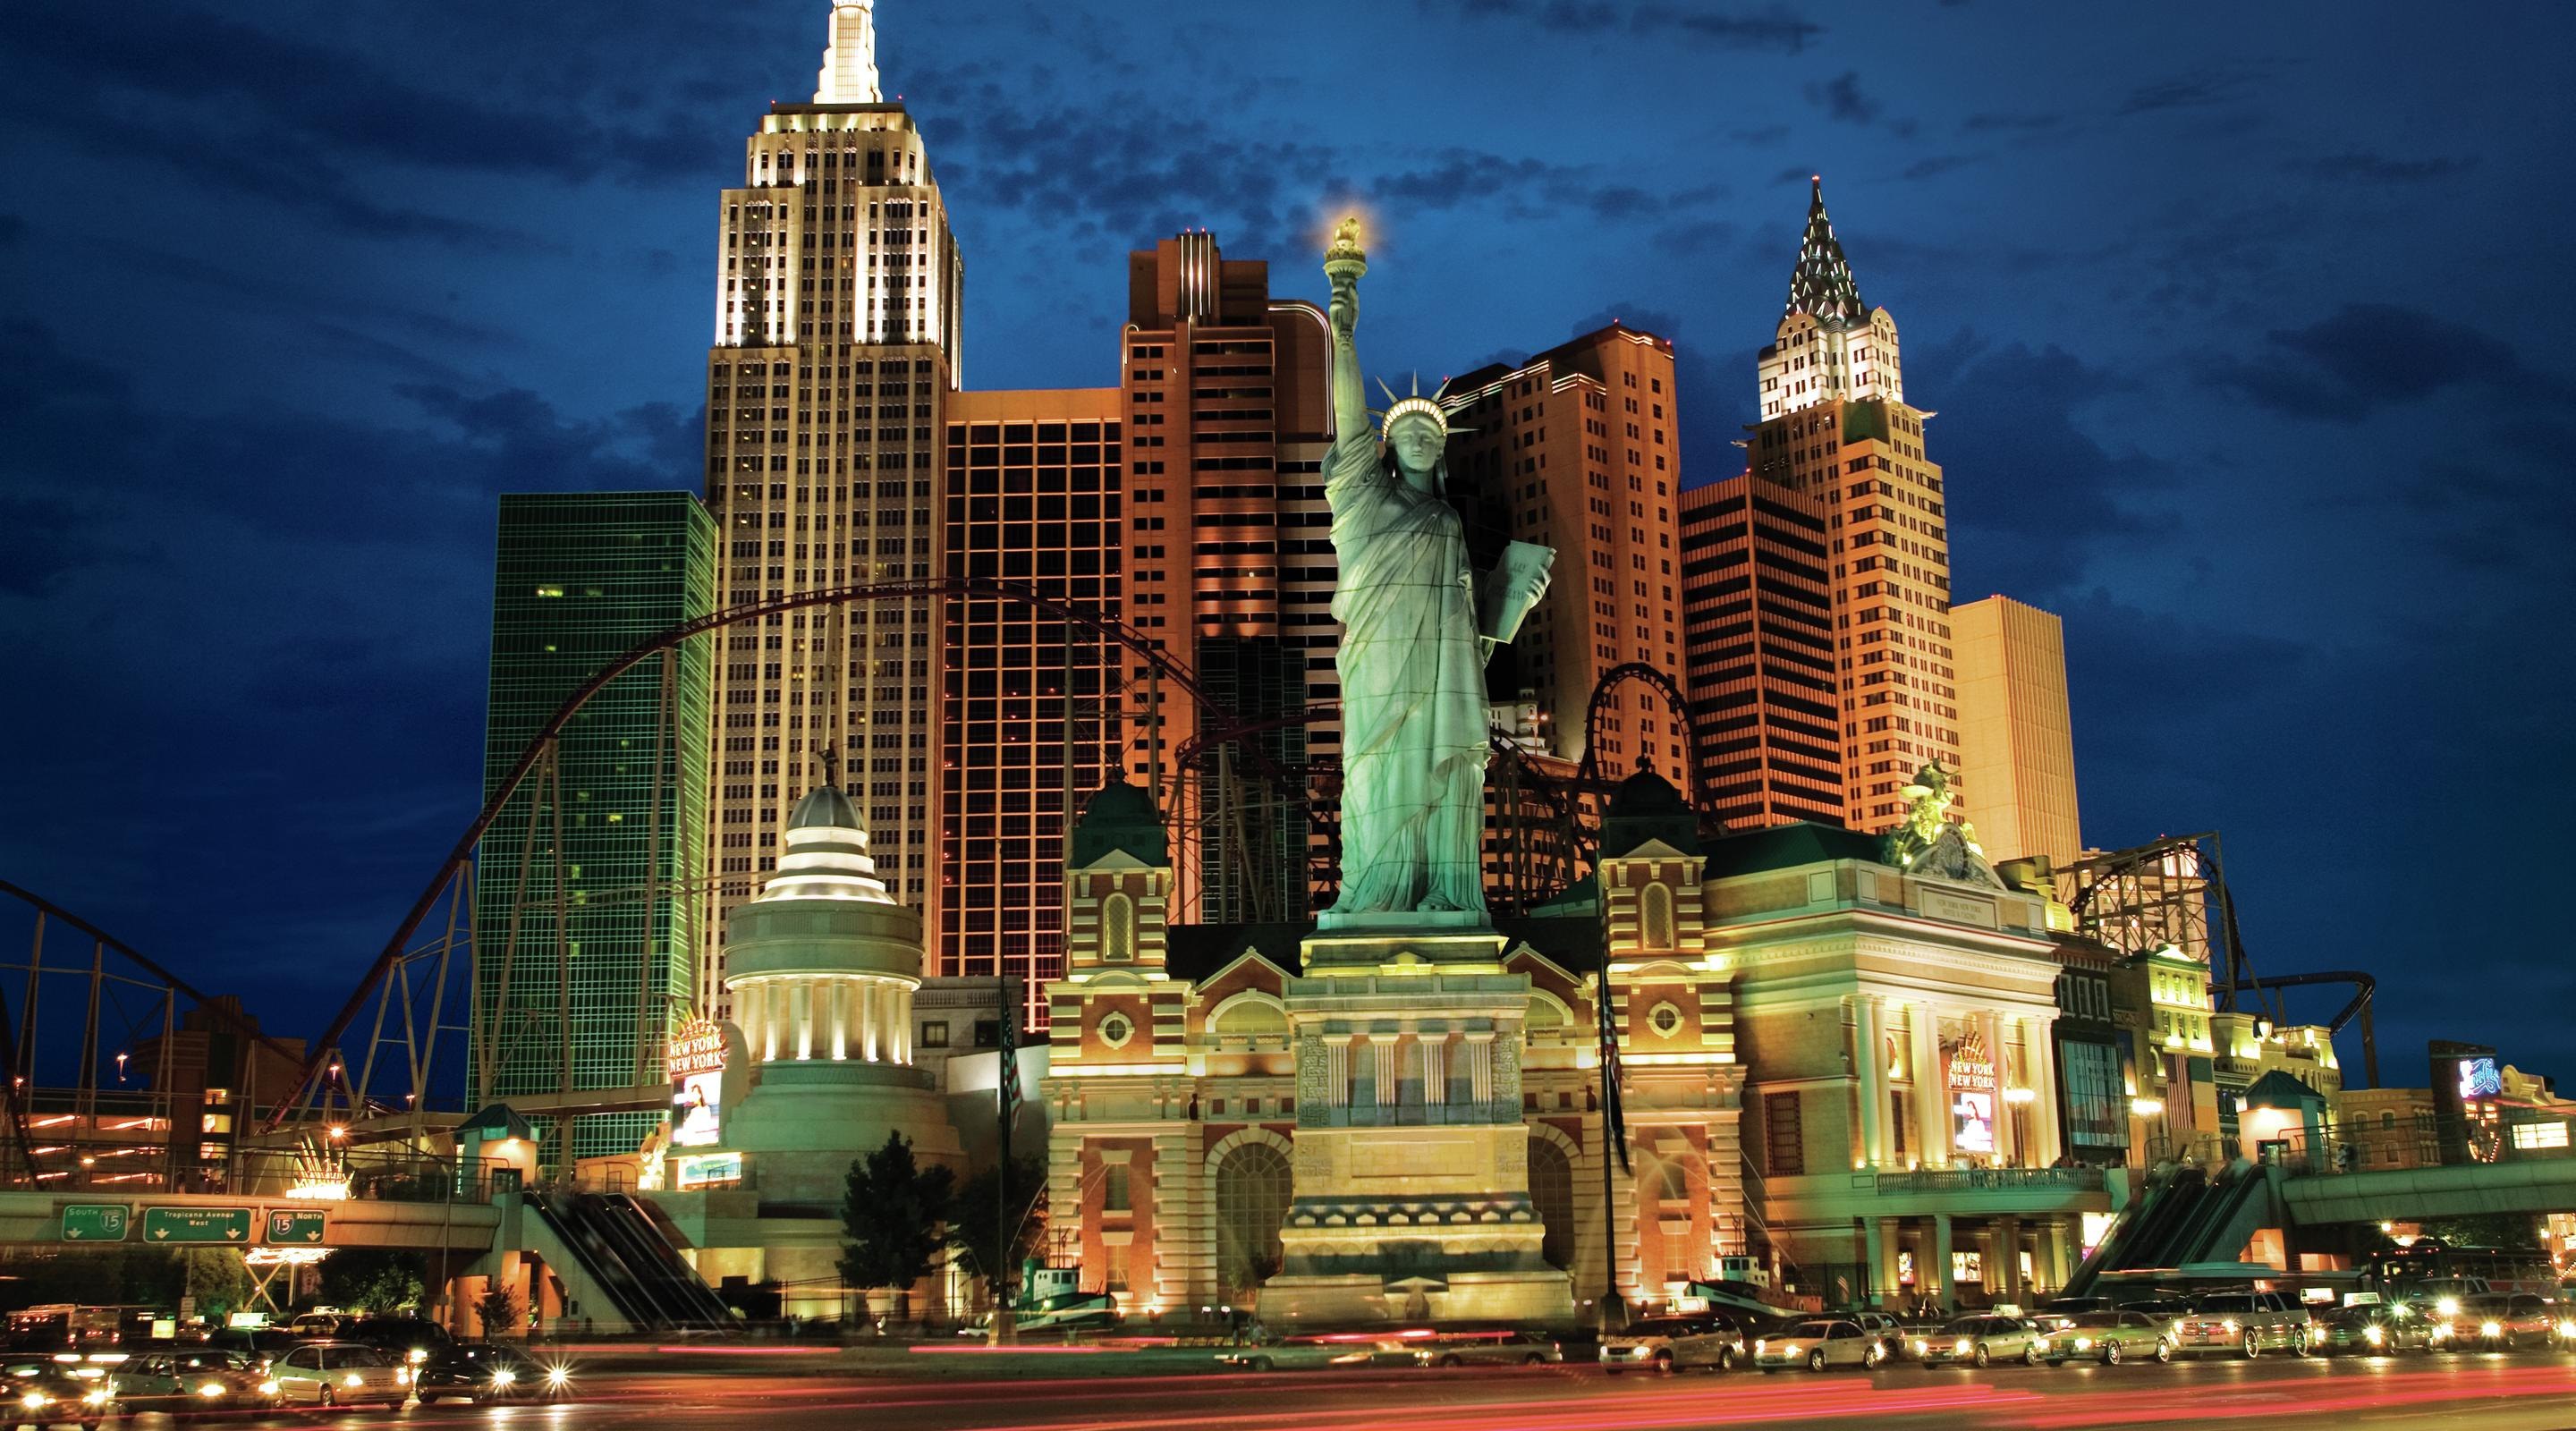 New York Hotel Casino